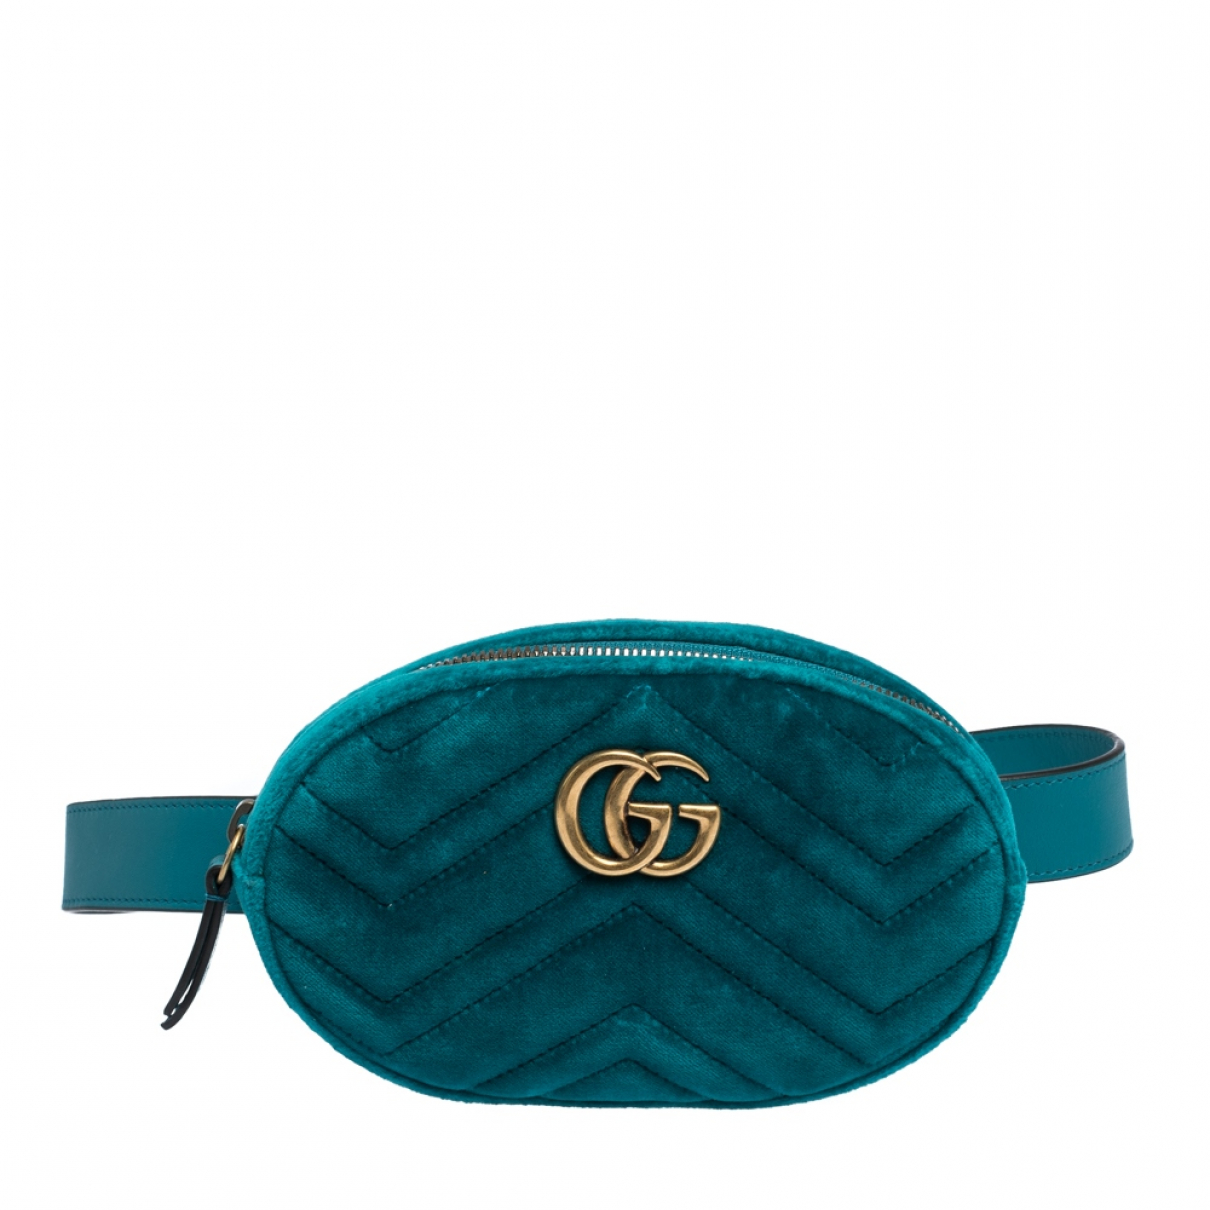 Gucci Marmont Clutch in Samt